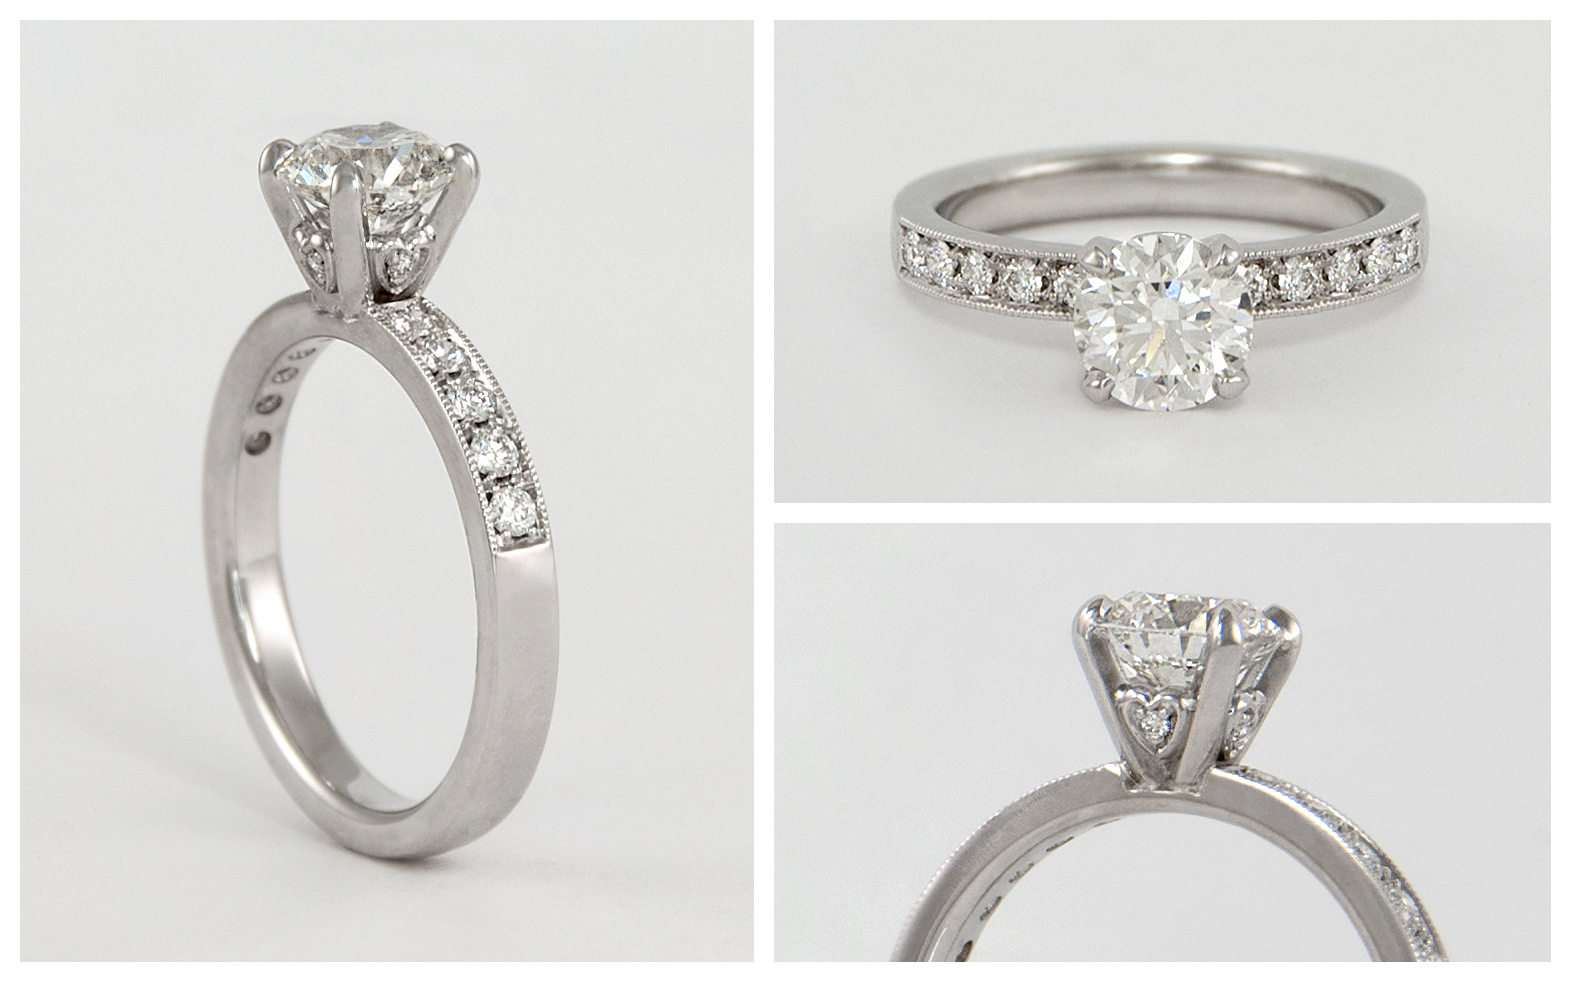 14KW Diamond Engagement Ring with Bead Set Band and Heart Accents